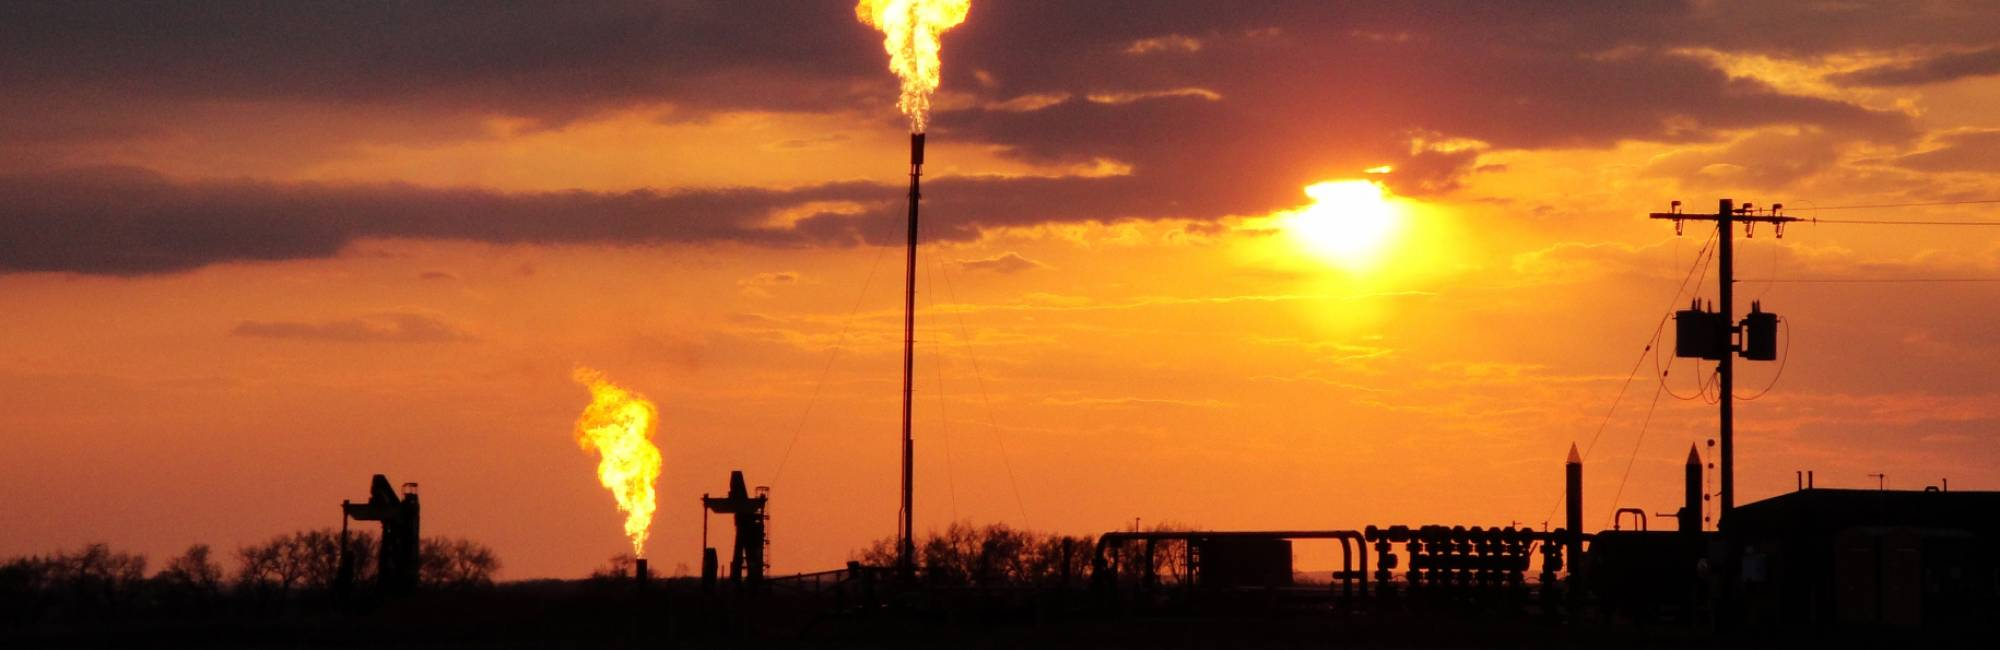 Methane is flared from a Bakken Field well site in North Dakota in this 2014 photo.